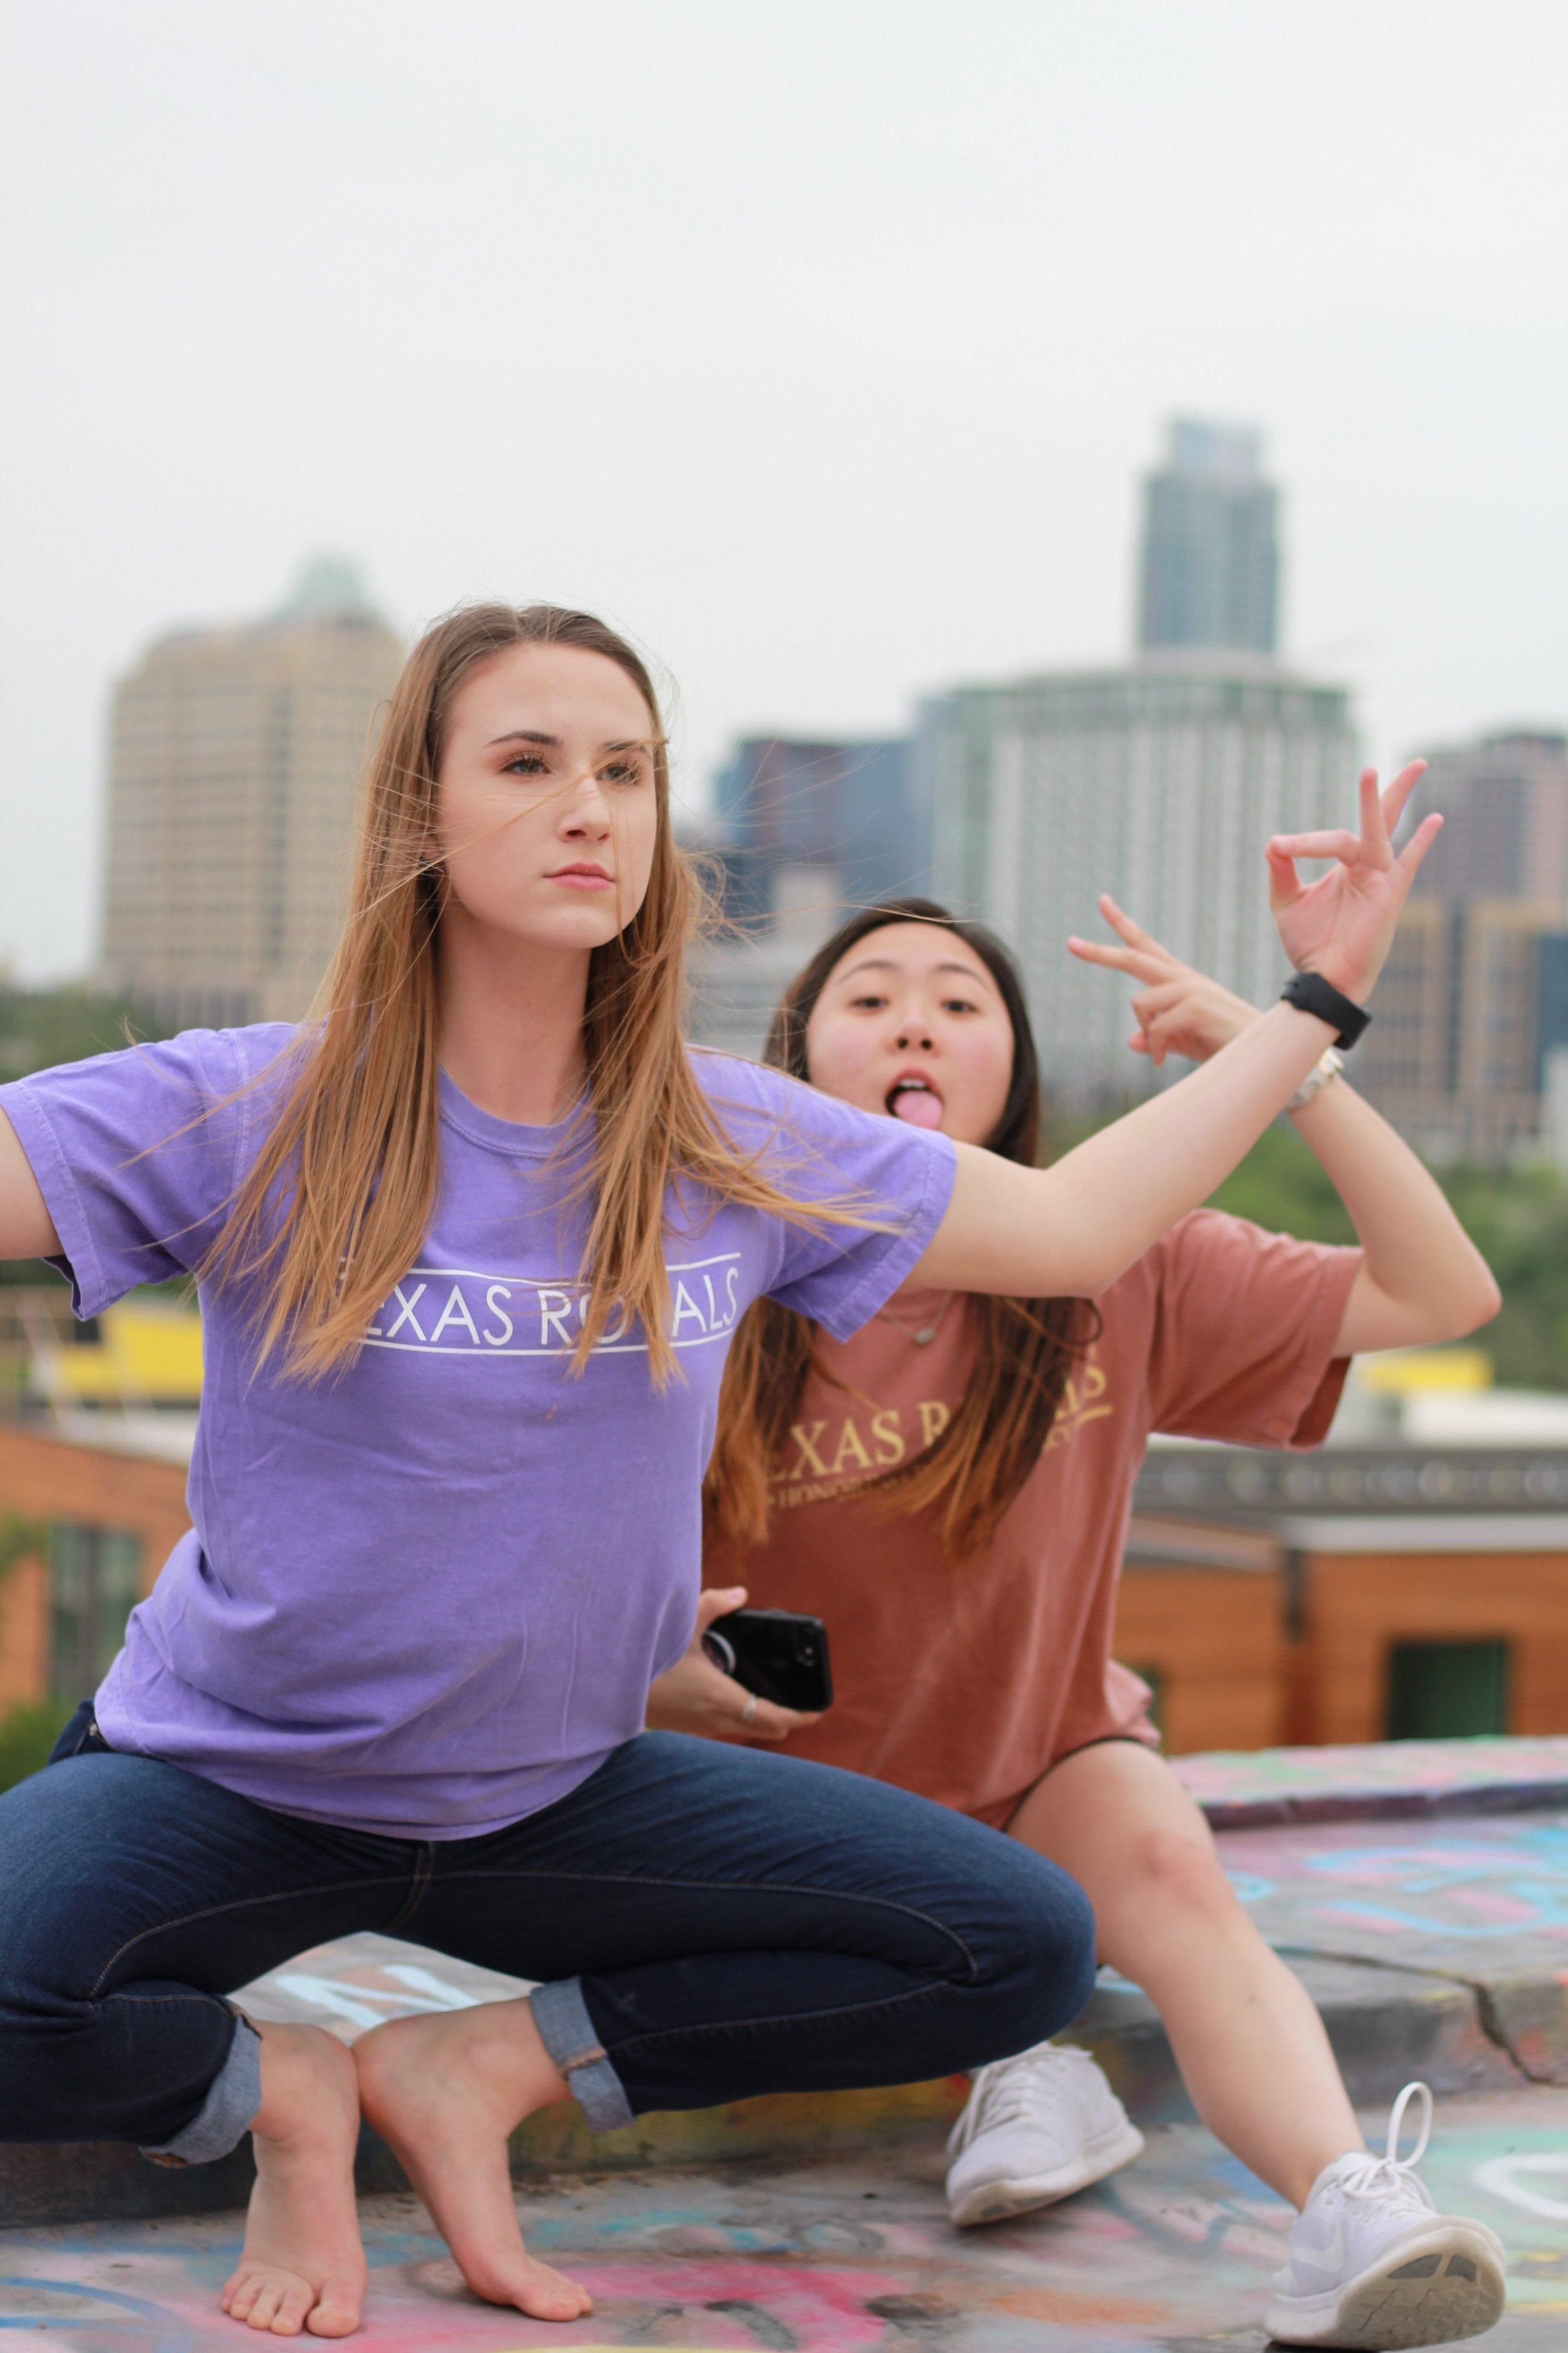 Silly moments while sporting fabulous Texas Royals merch